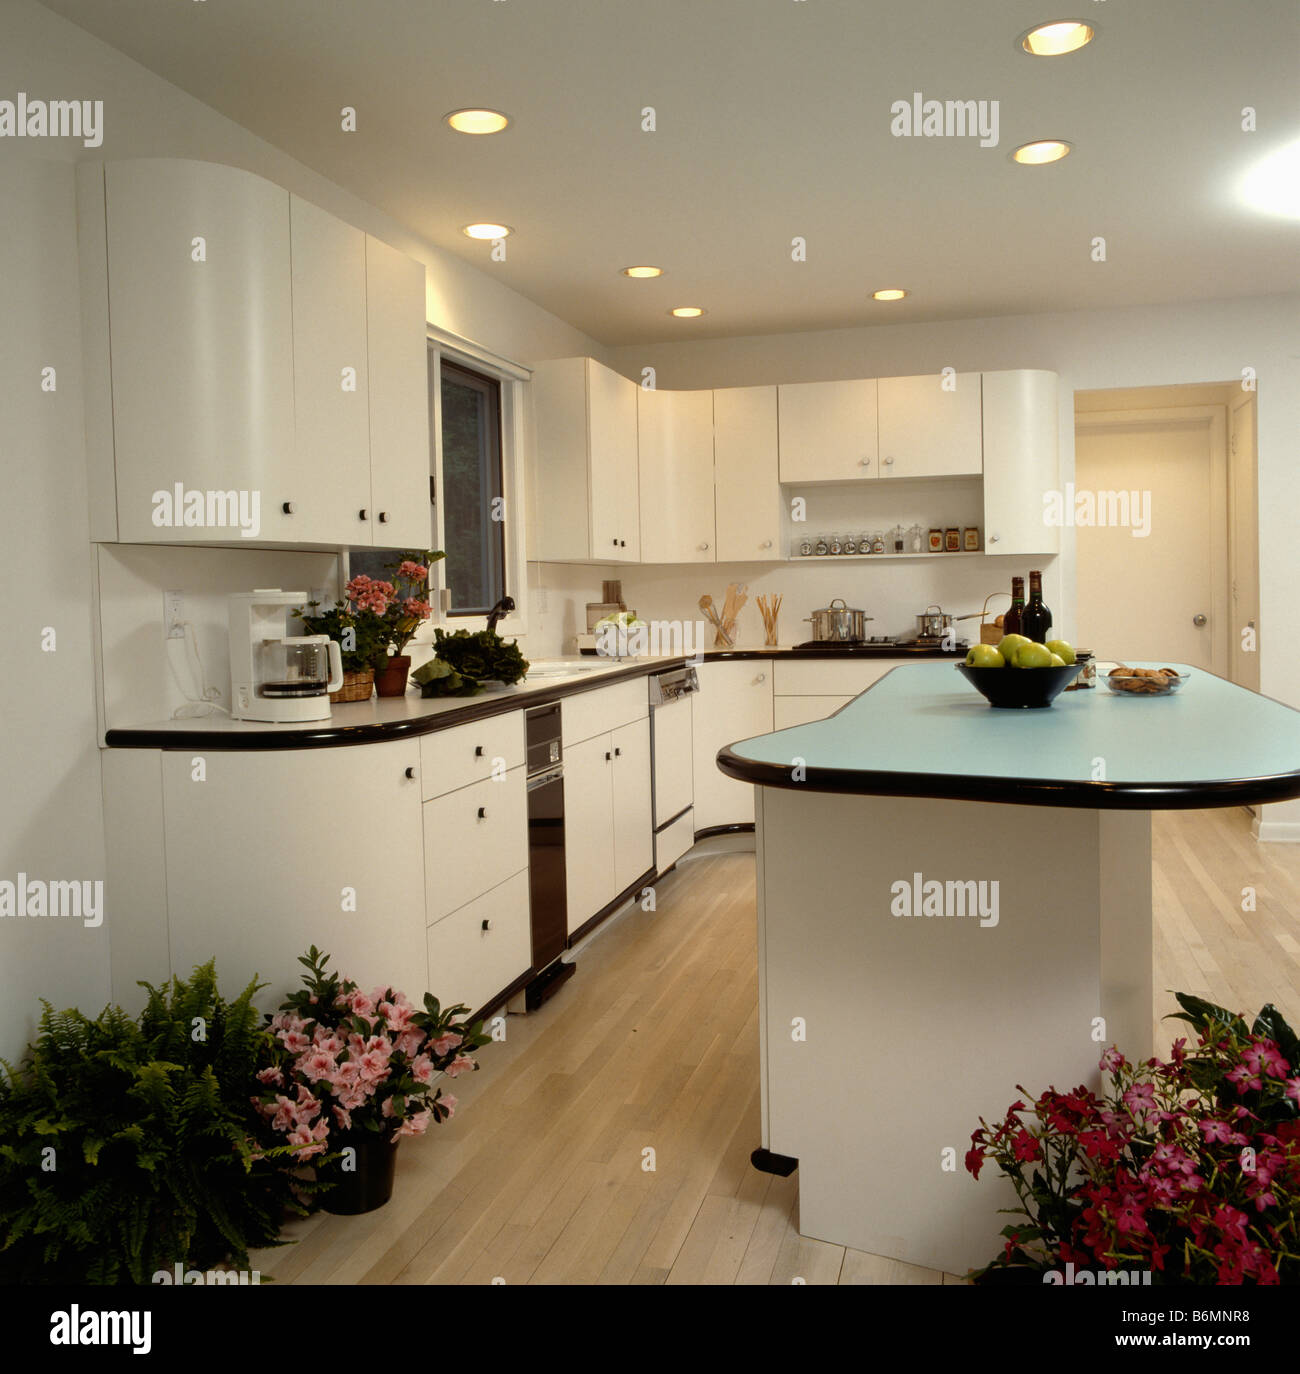 Kitchen Worktop Lighting: Downlighting And Curved Island Unit With Pale Blue Worktop